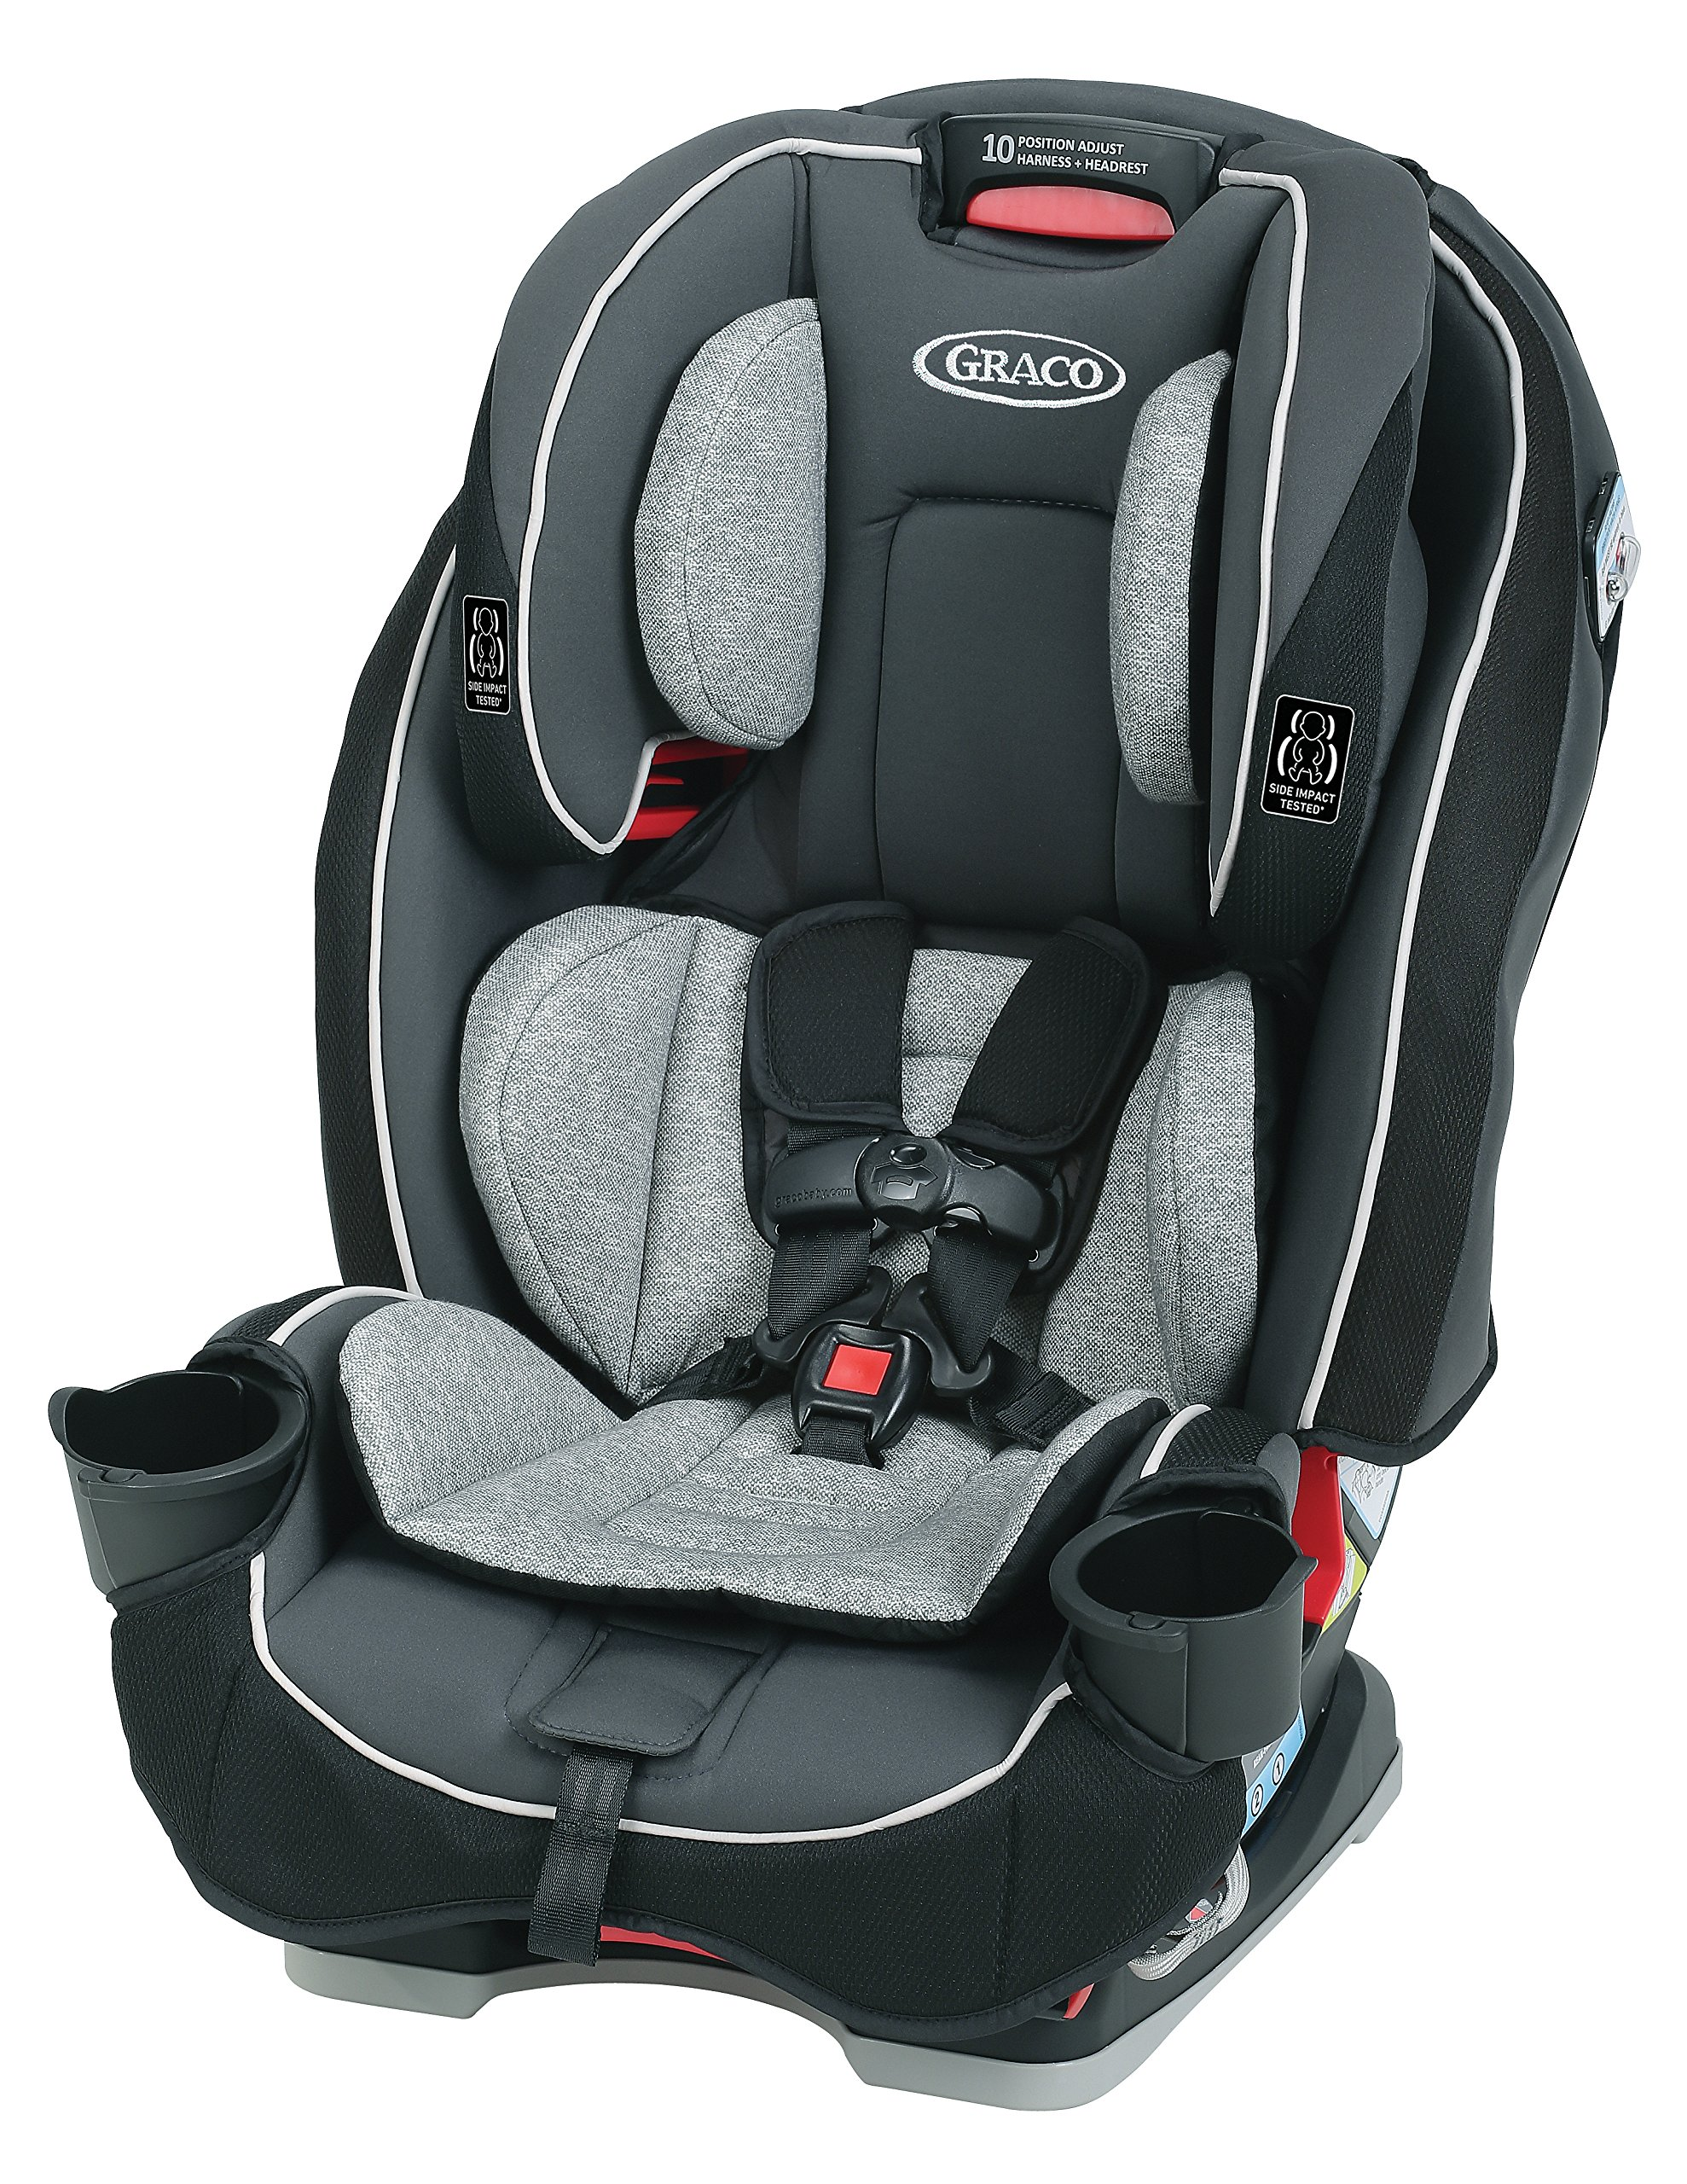 Amazon.com : Graco SlimFit All-in-One Convertible Car Seat